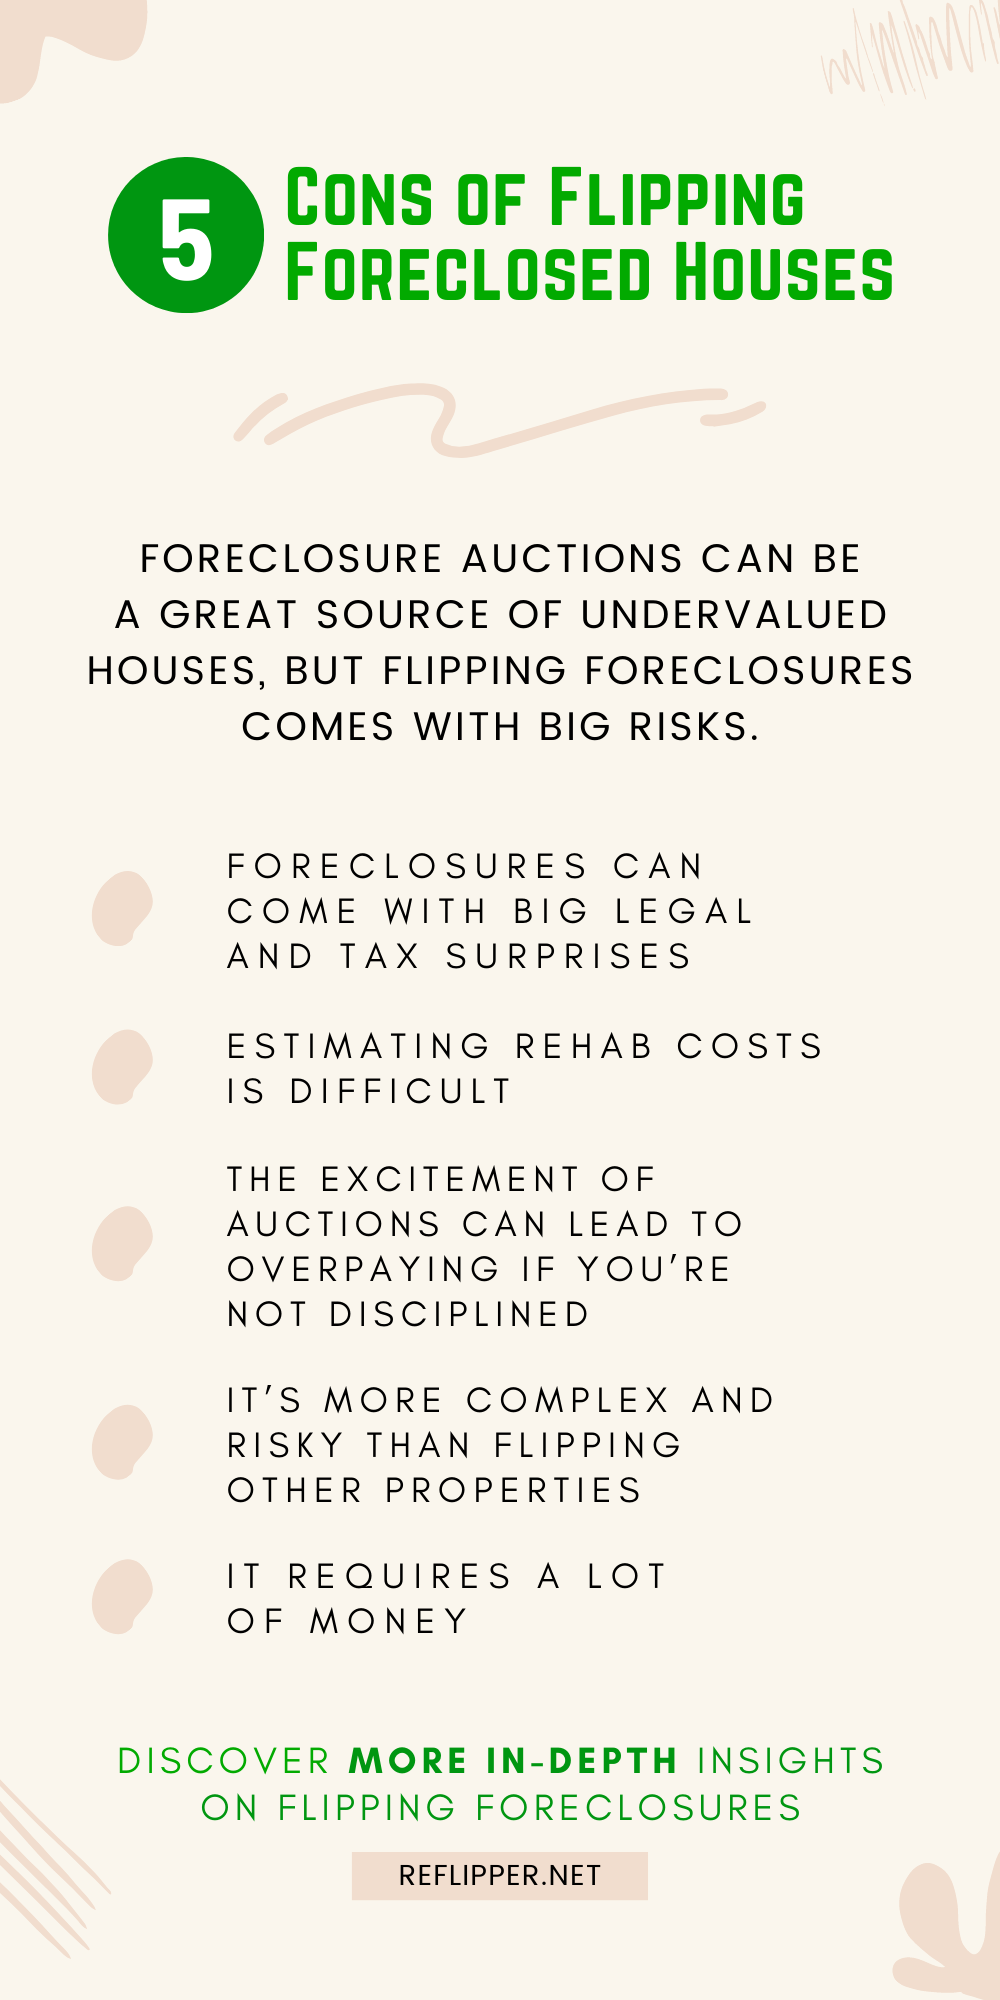 5 Cons of Flipping Foreclosed Houses